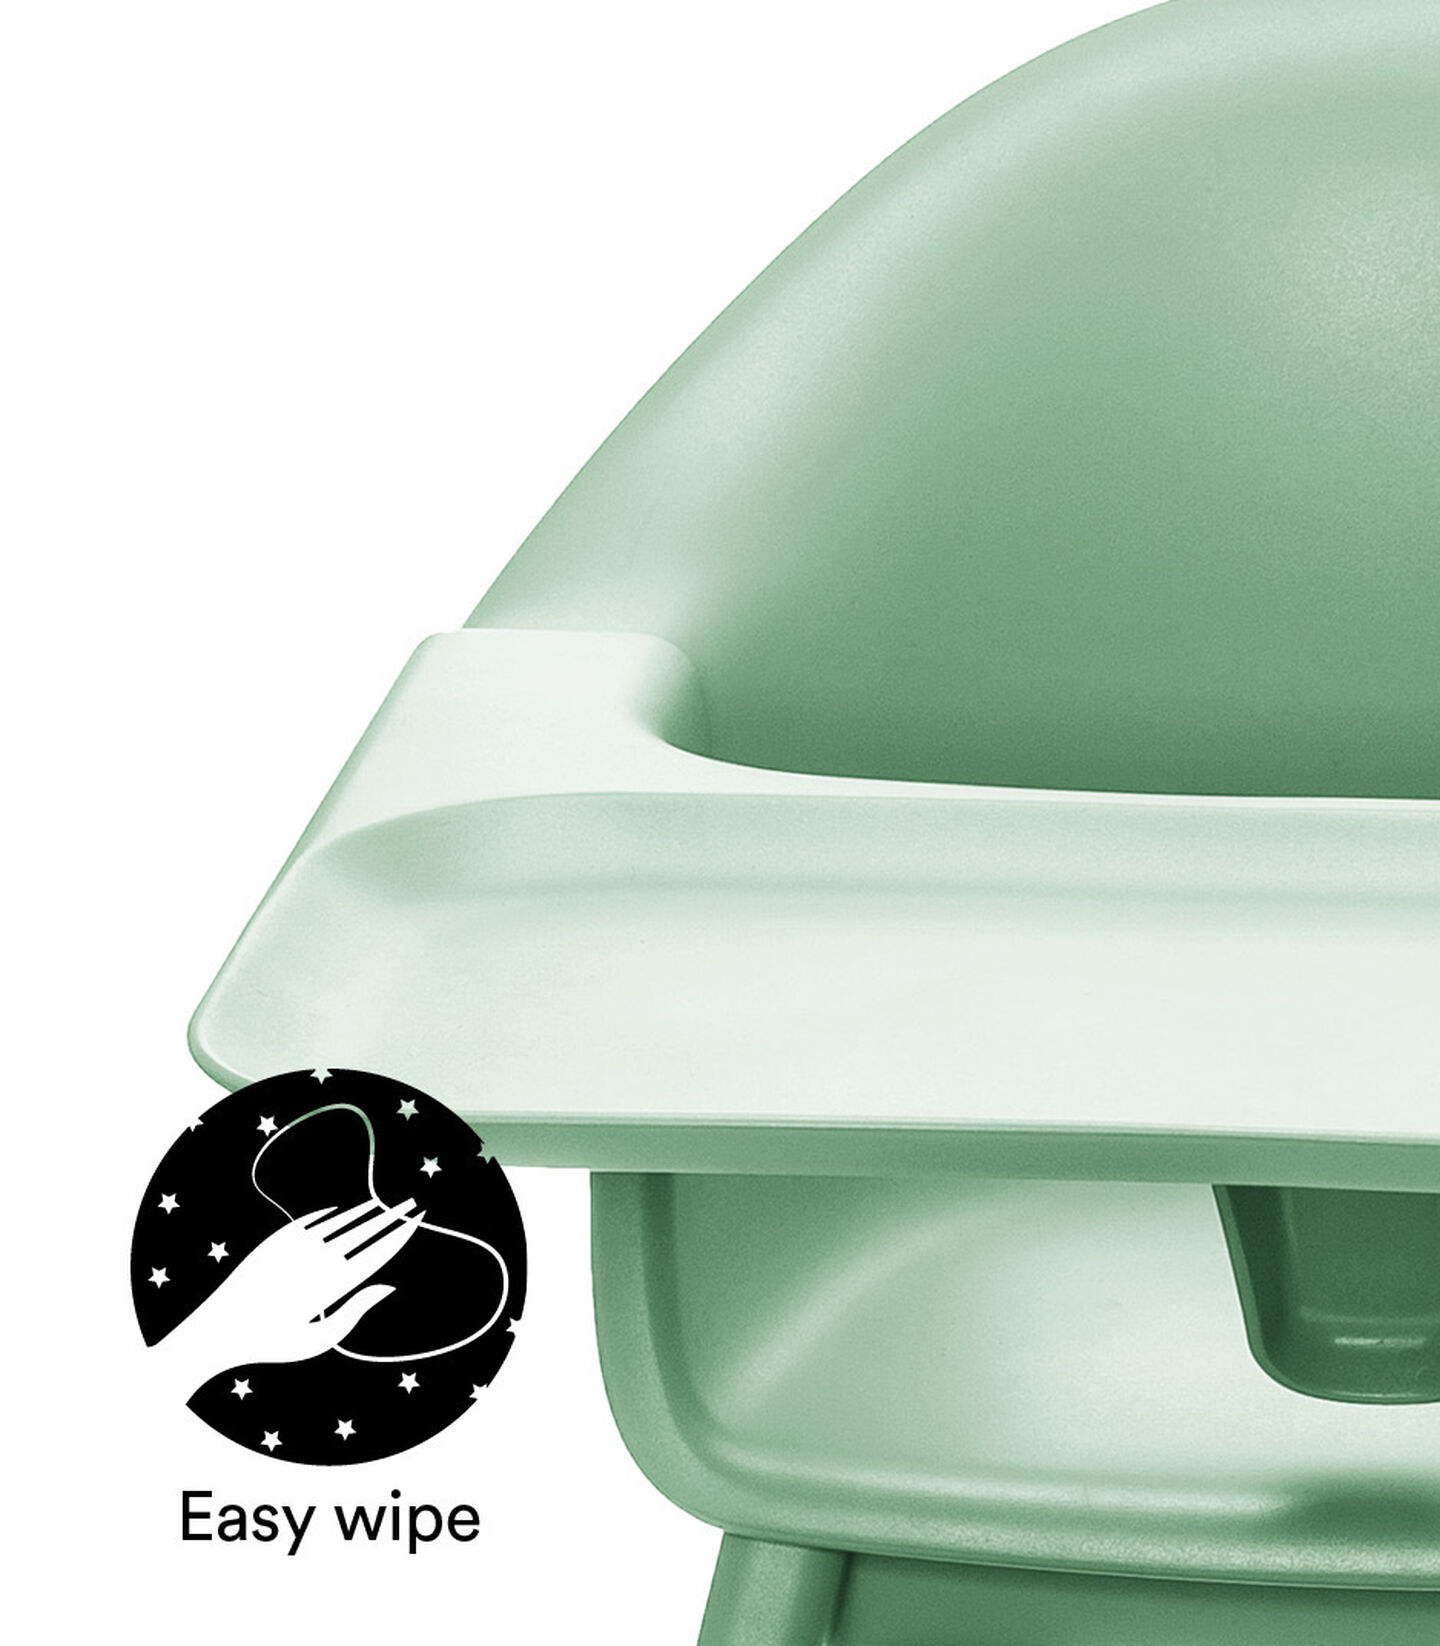 Stokke® Clikk™ High Chair. Natural Beech wood and Clover Green plastic parts including Tray.